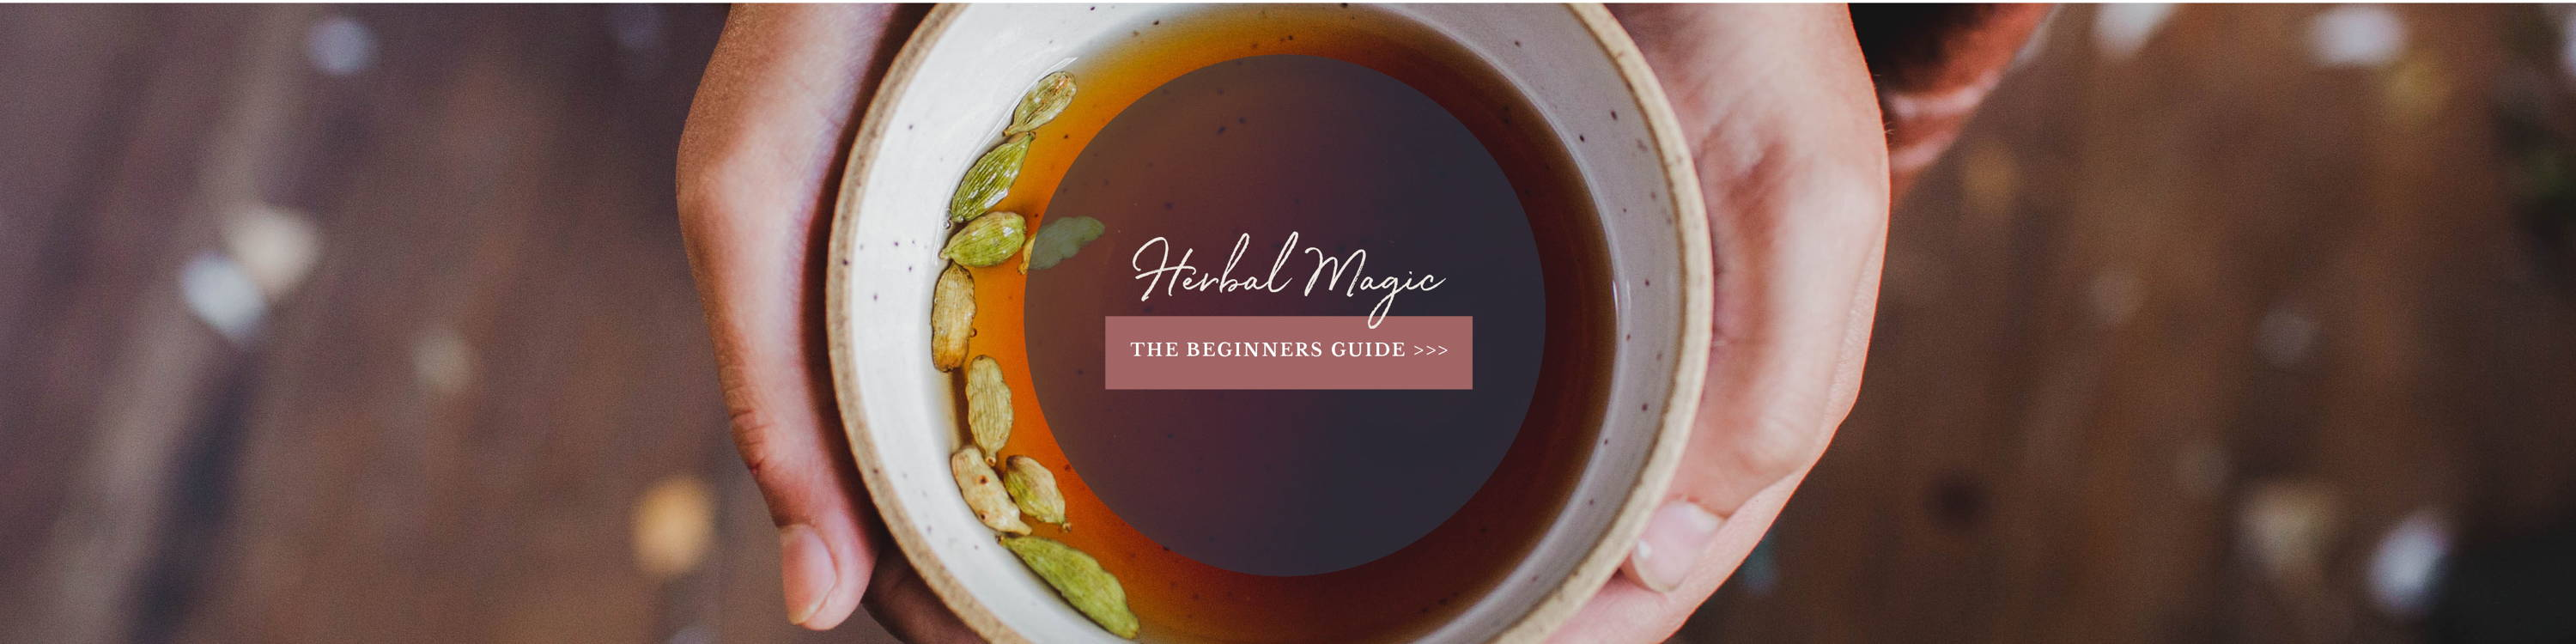 wild-roots-apothecary-herbal-tea-cup